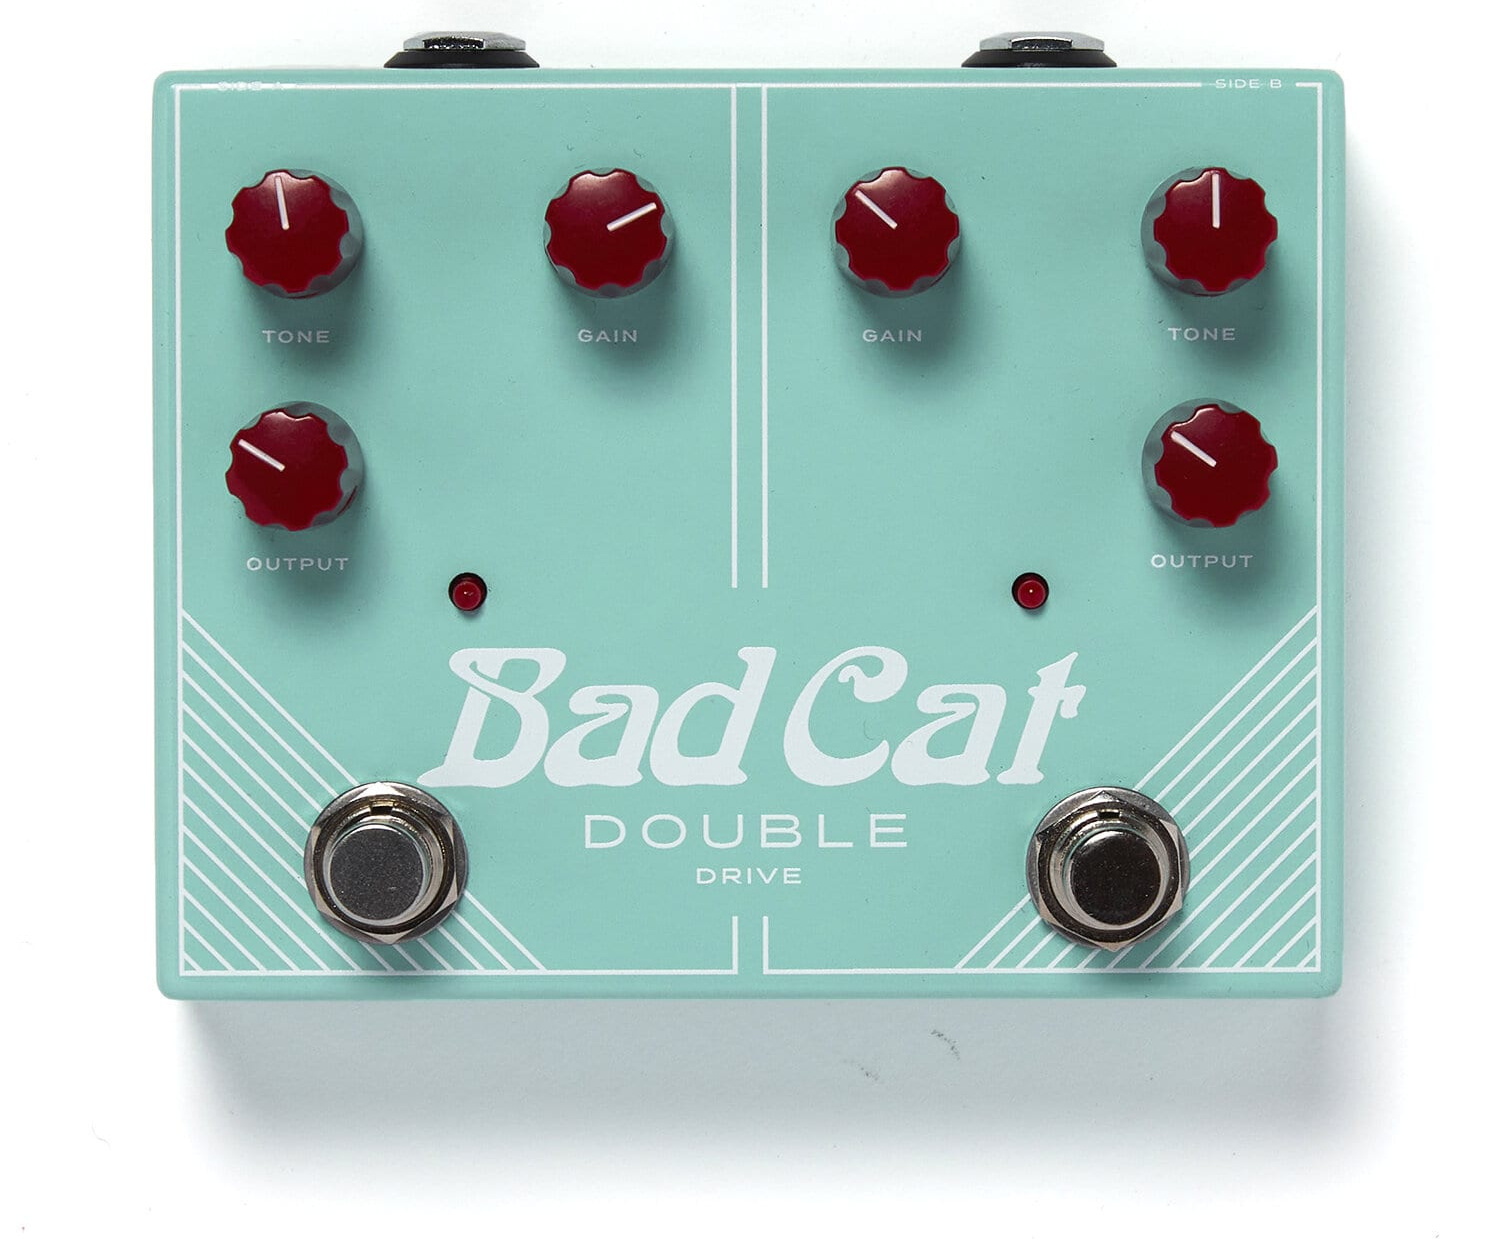 Bad Cat Double Drive dual channel overdrive